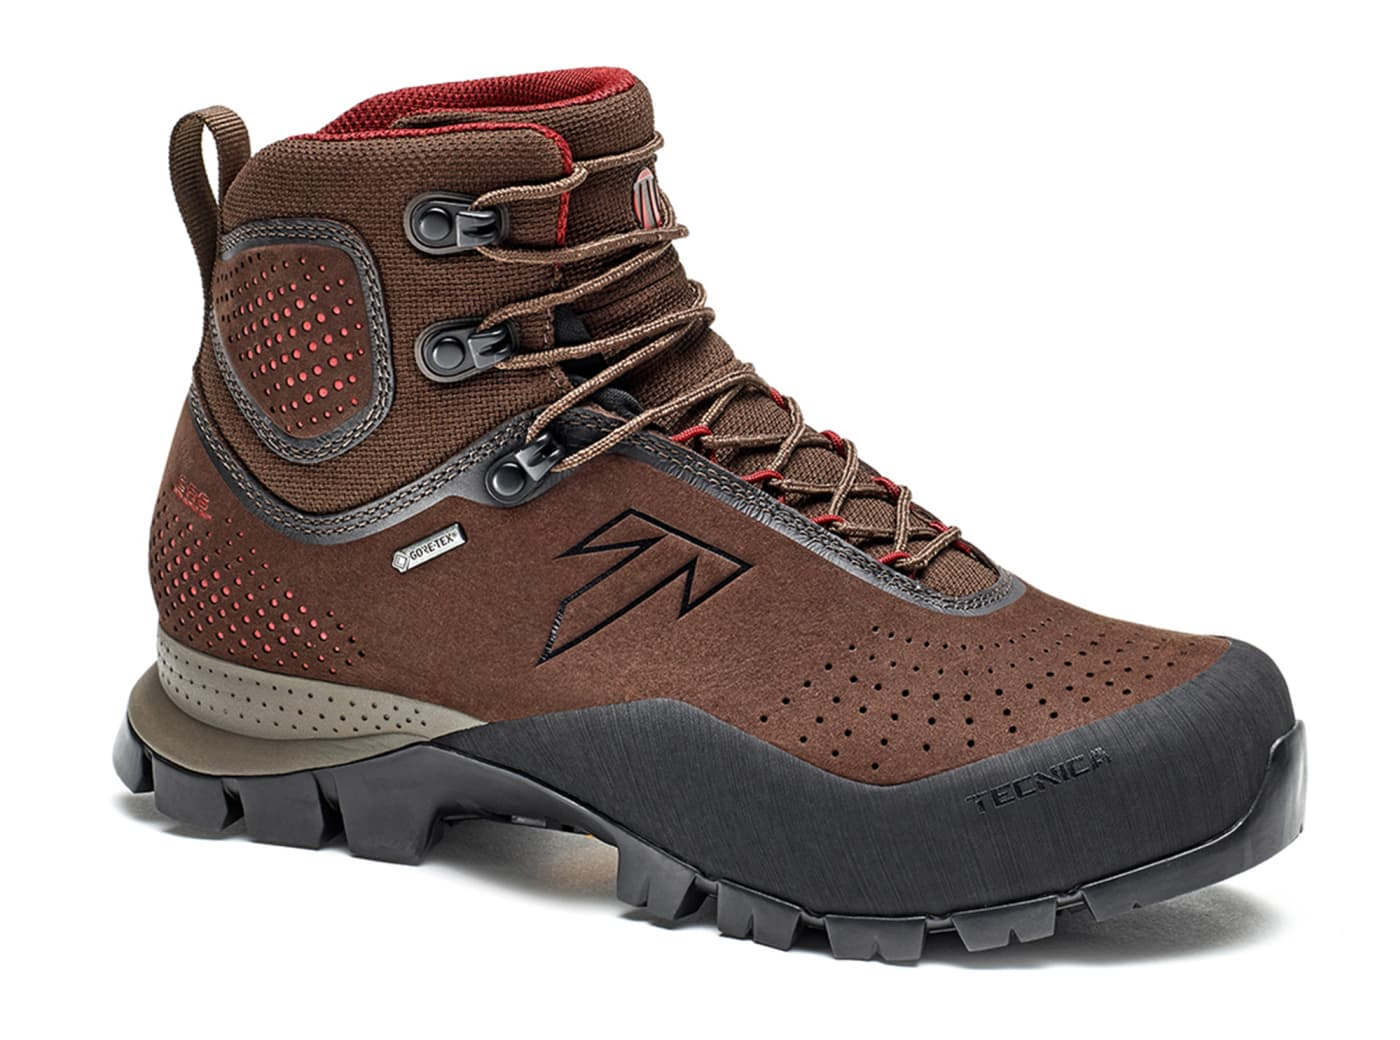 Tecnica Forge GTX WS Hiking Boot